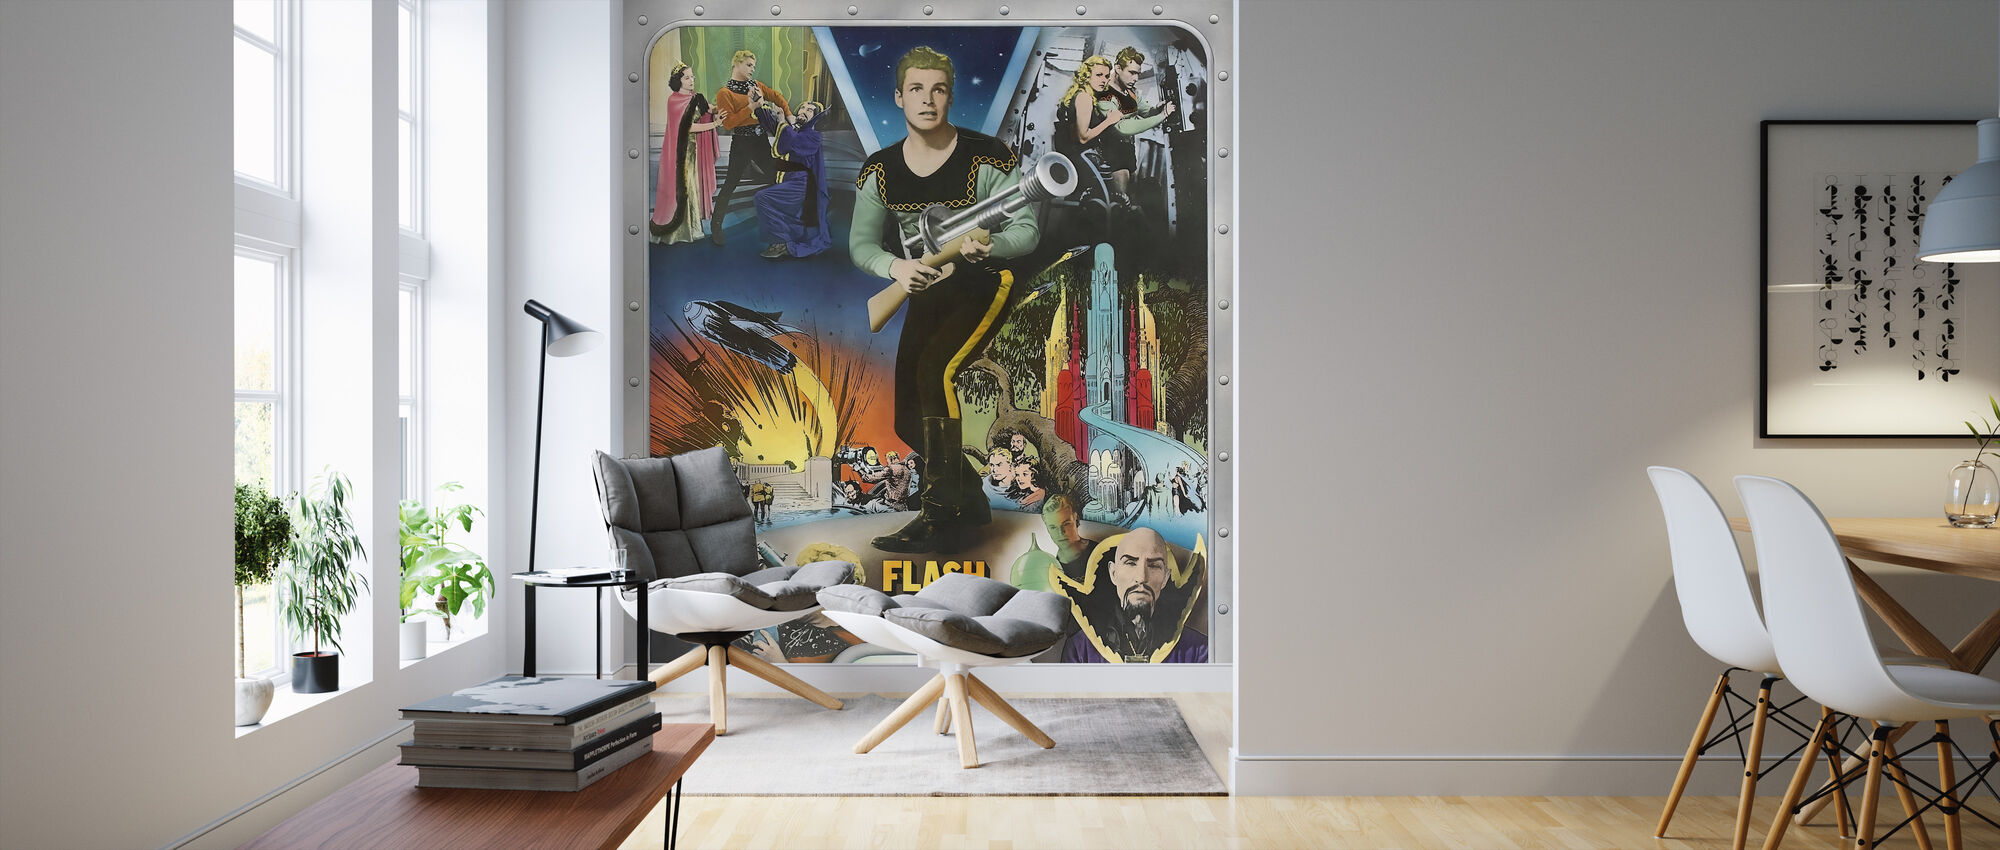 flash gordon - Ray taylor en Frederick Stephani - Behang - Woonkamer